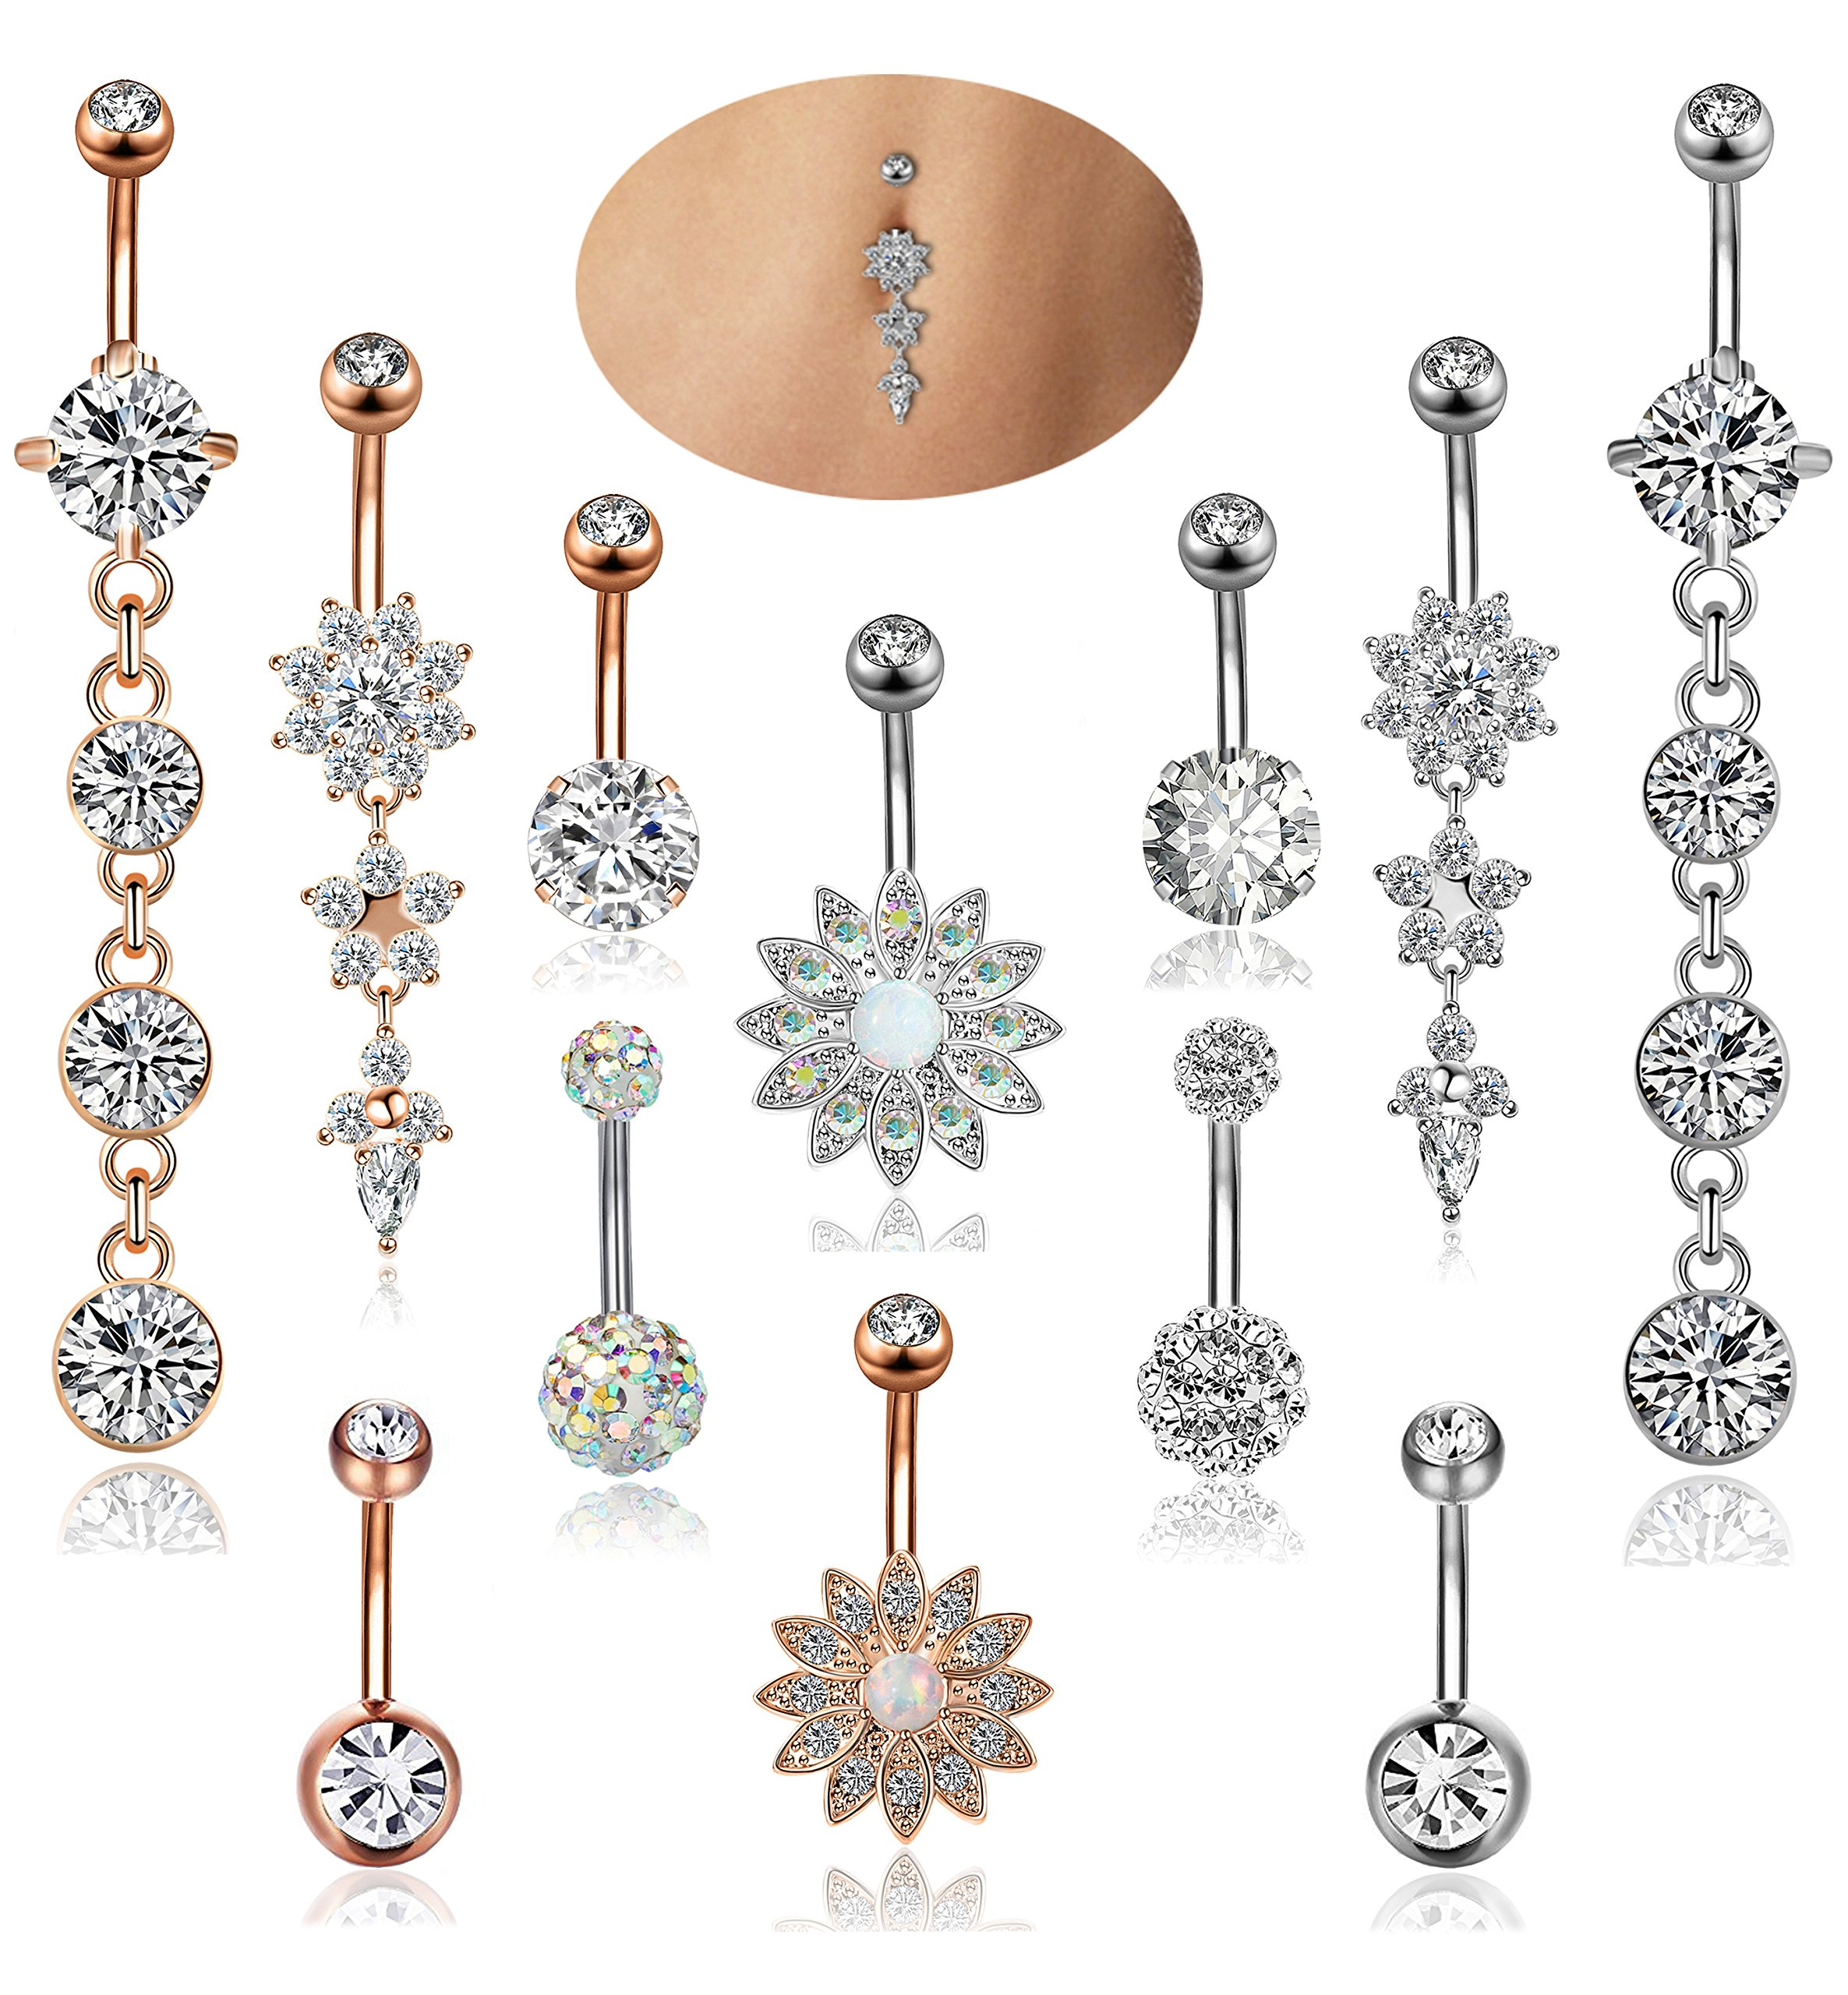 YOVORO 12PCS 14G Stainless Steel Dangle Belly Button Rings for Women Girls Navel Rings Barbell Body Piercing Jewelry by YOVORO